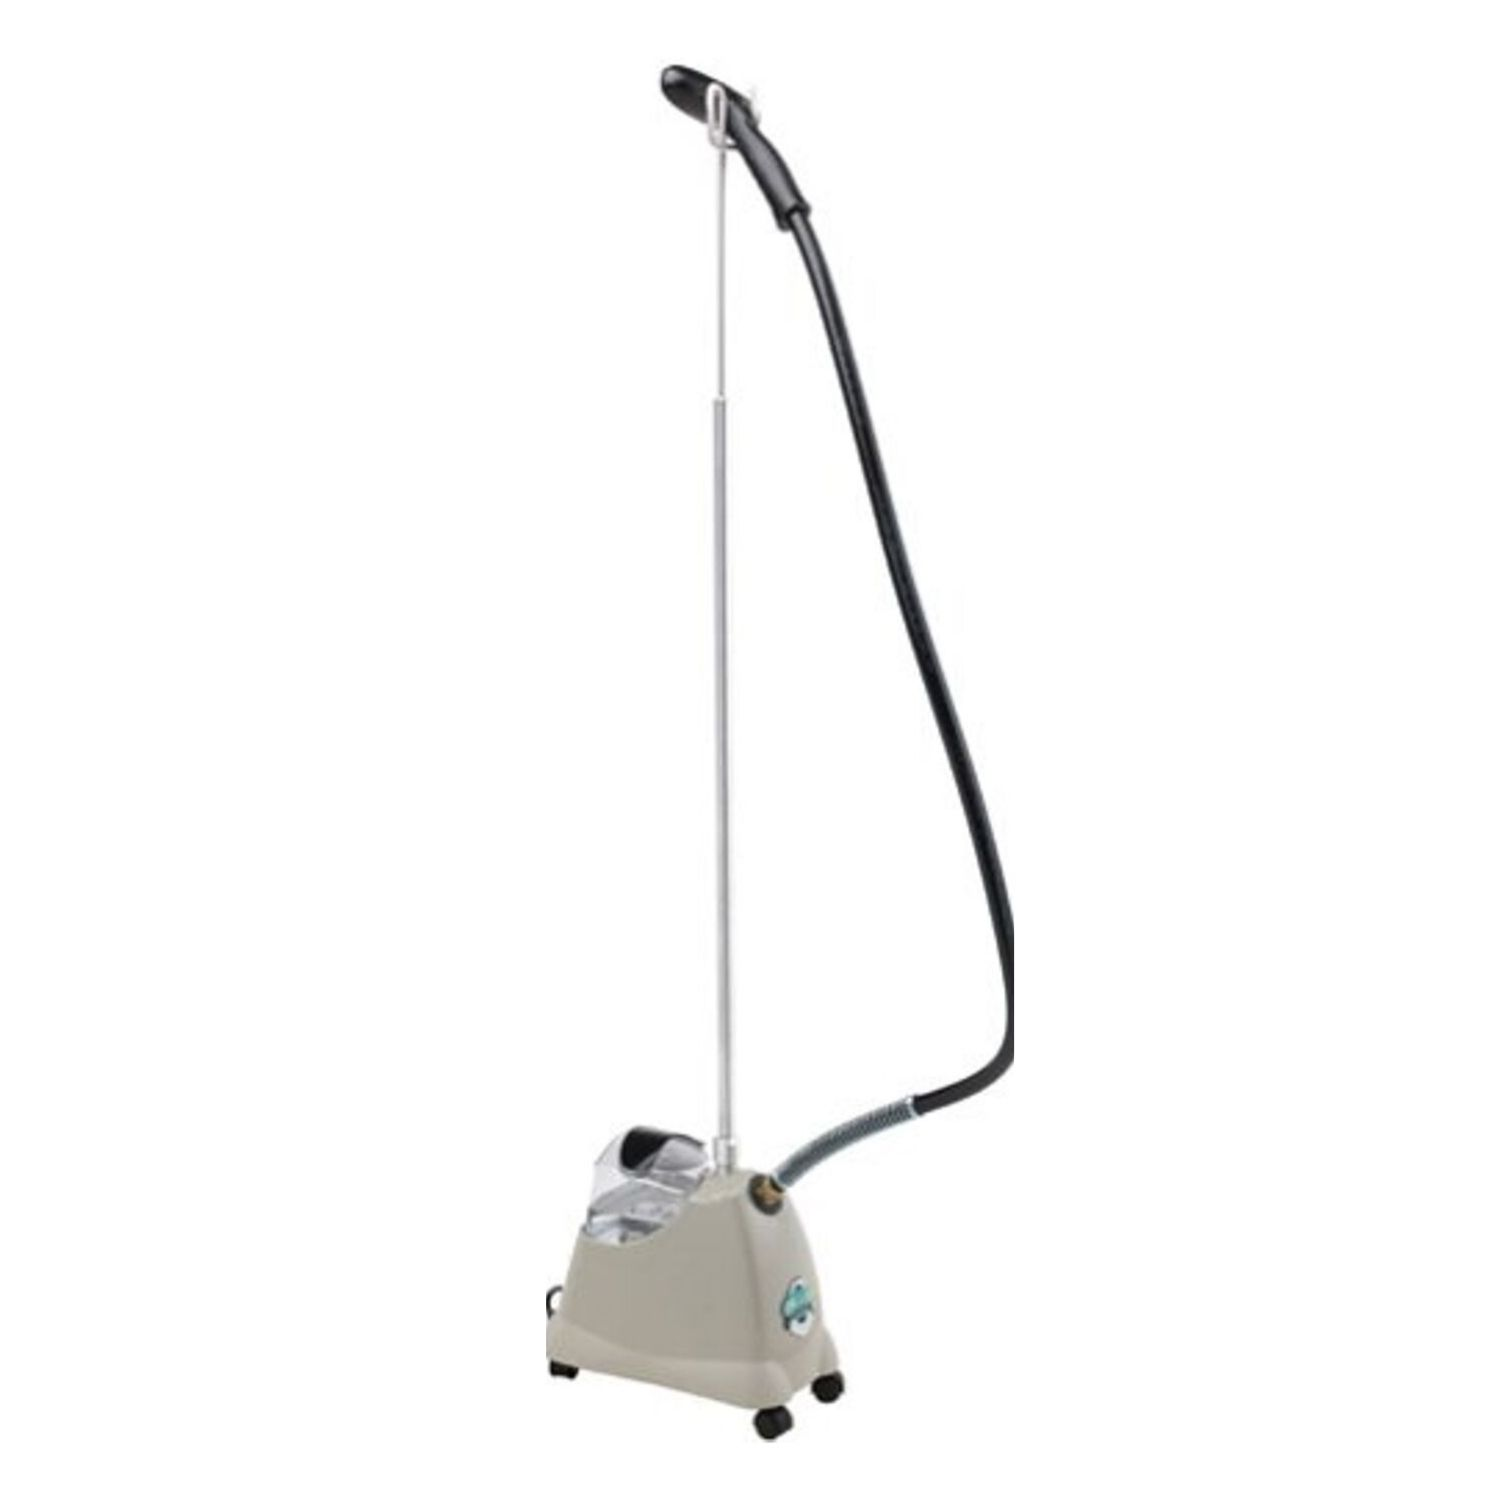 Jiffy Garment Steamer with Plastic Steam Head